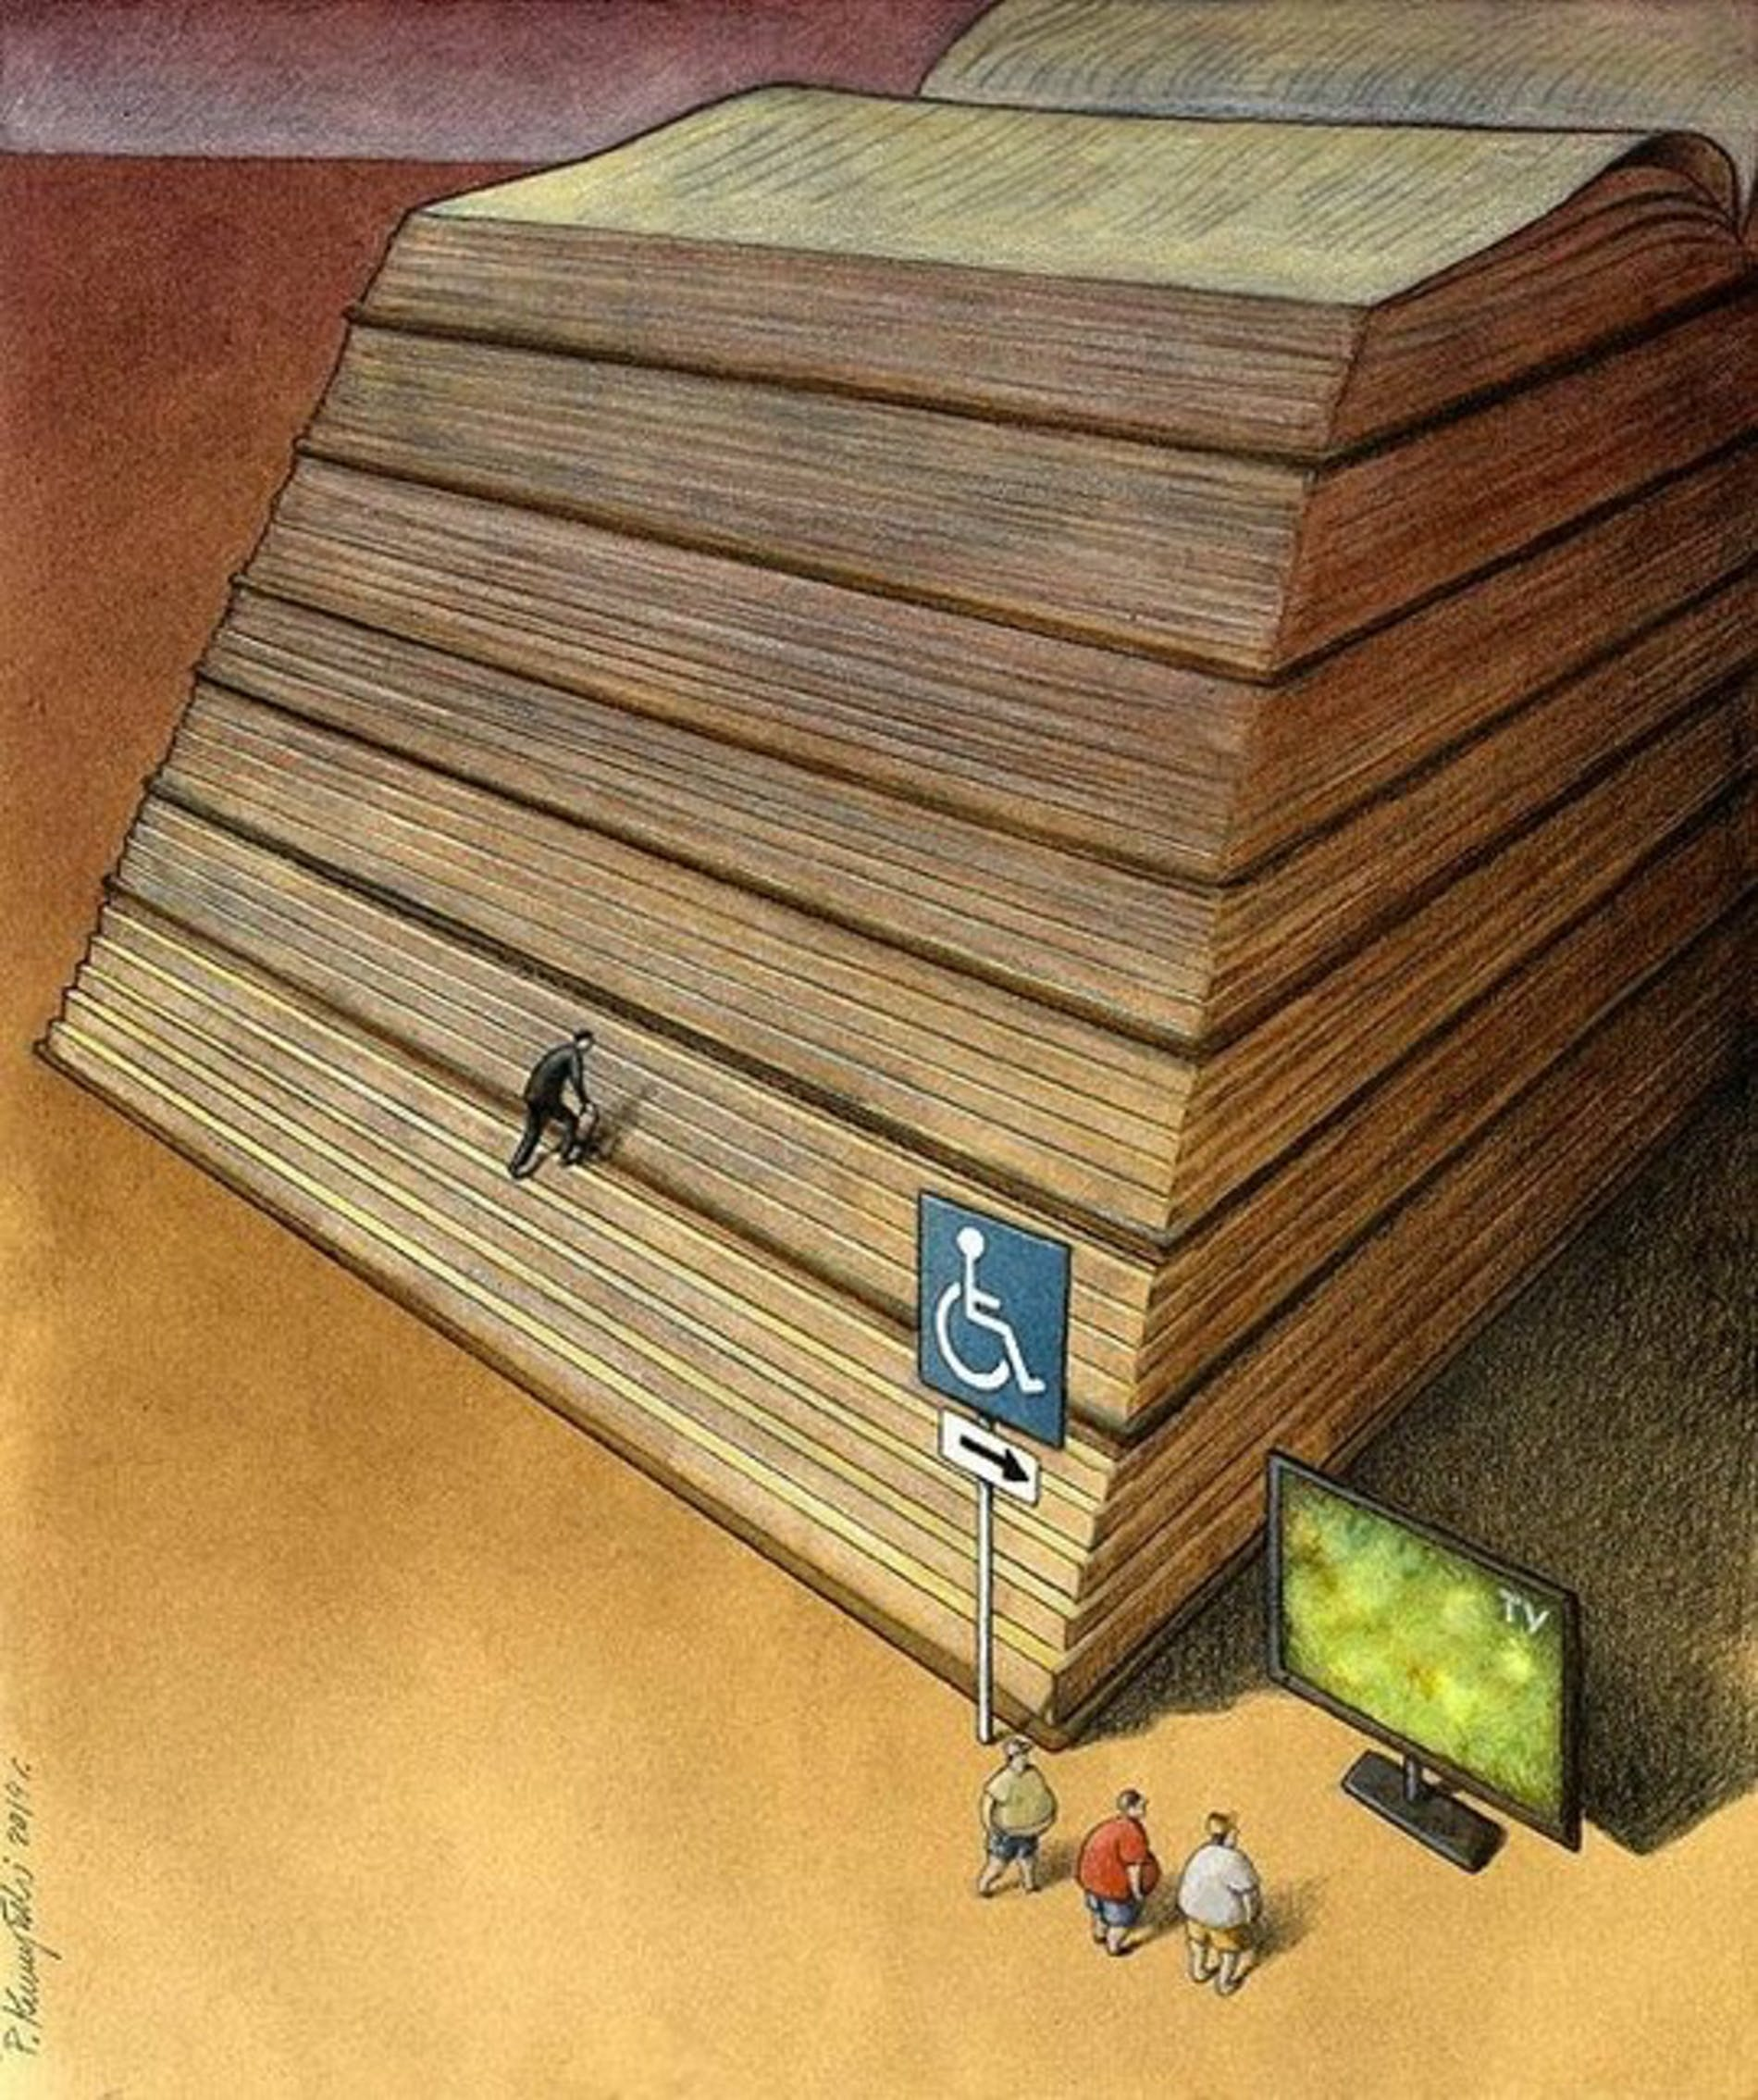 1631614332577452 illustrations about books pawel kuczynski noone is disabled